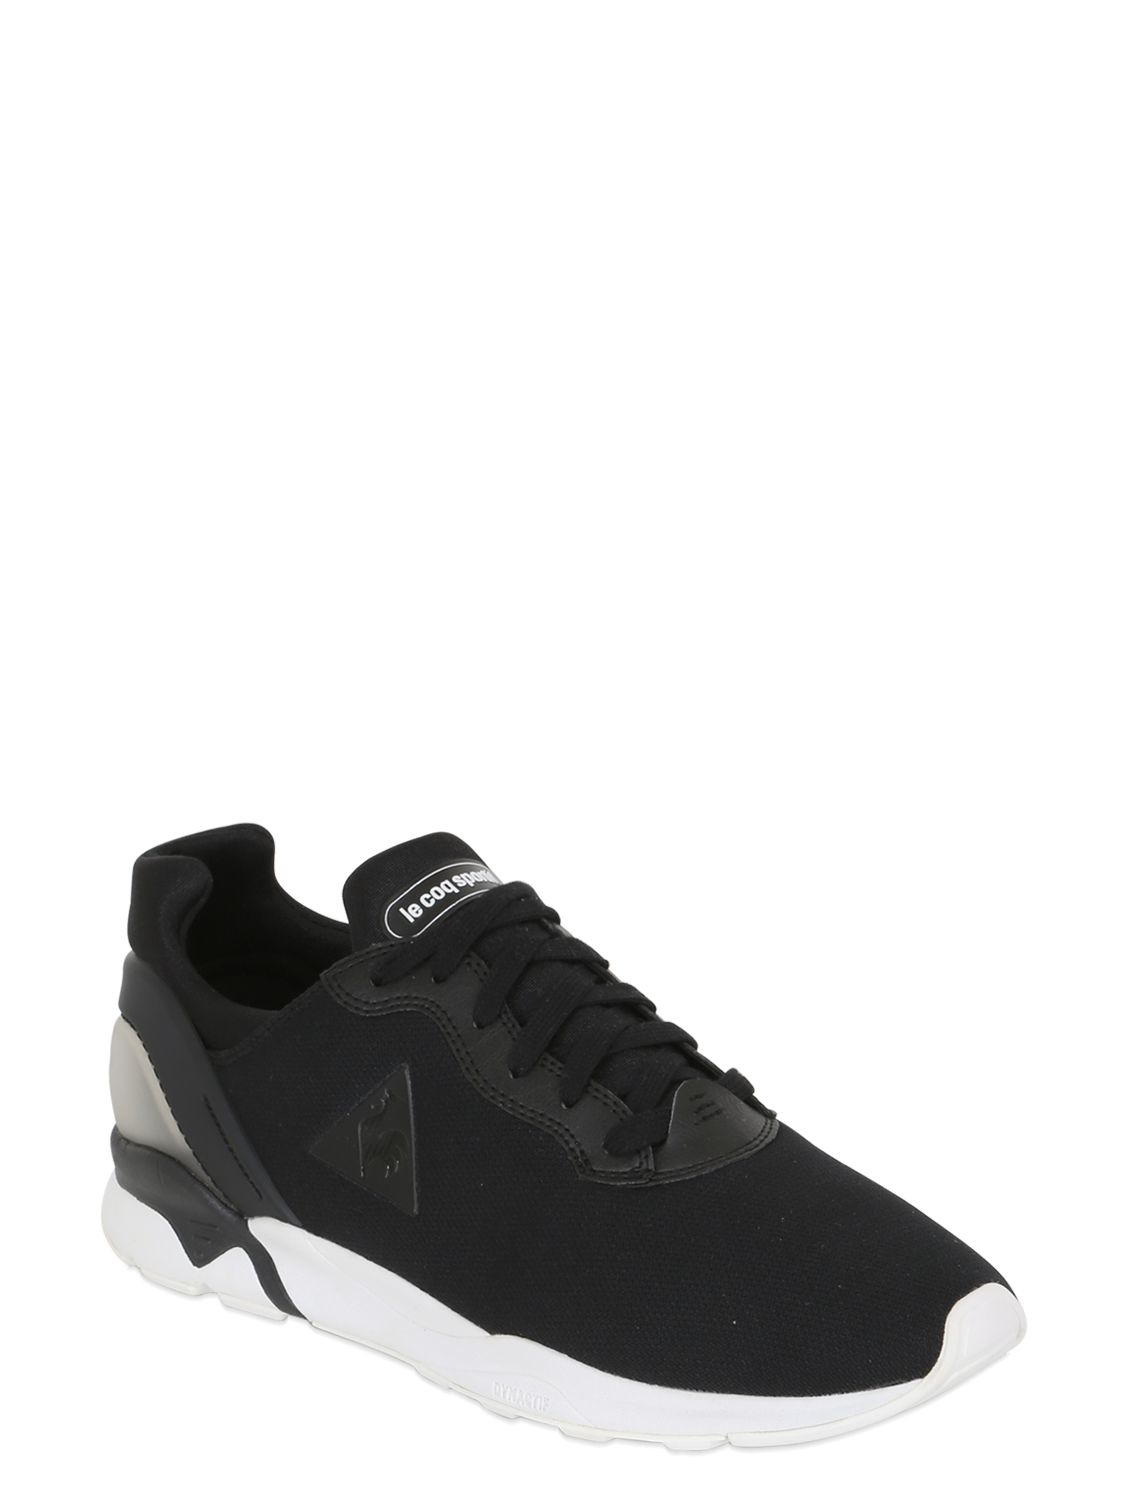 le coq sportif lcsr 16 anodized sneakers in black for men lyst. Black Bedroom Furniture Sets. Home Design Ideas